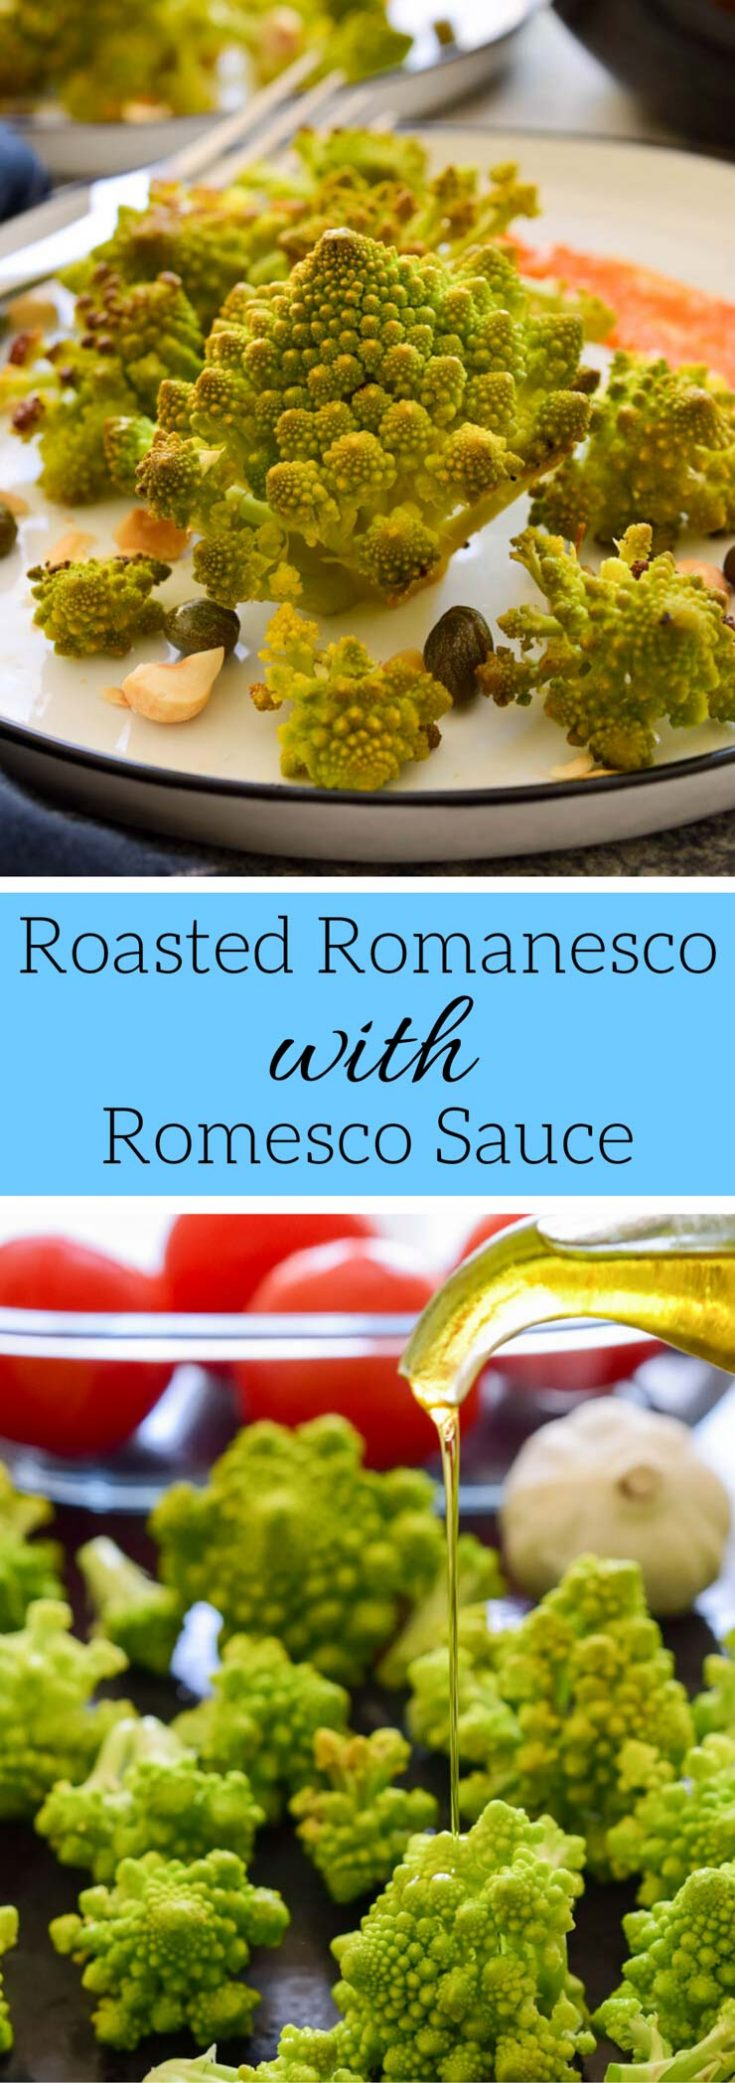 Italian romanesco cauliflower combines with Spanish romesco sauce in this simple roasted romanesco recipe that lets the flavour of simple, fresh Mediterranean ingredients shine through.